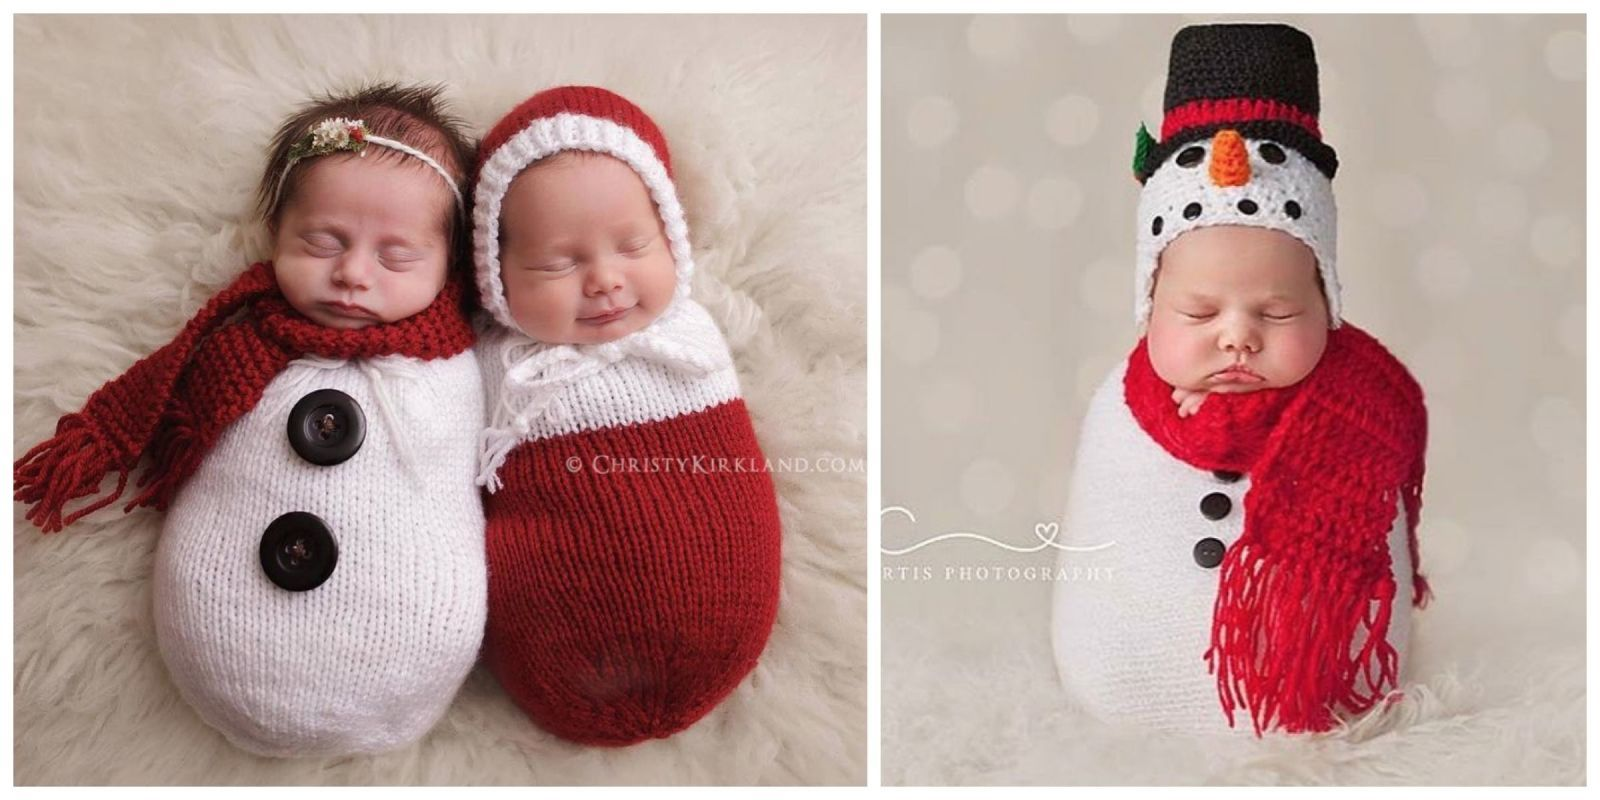 54b19a5ad These 17 Newborn Babies Wearing Knitted Christmas Outfits Will Fill Your  Heart With Cheer - CountryLiving.com